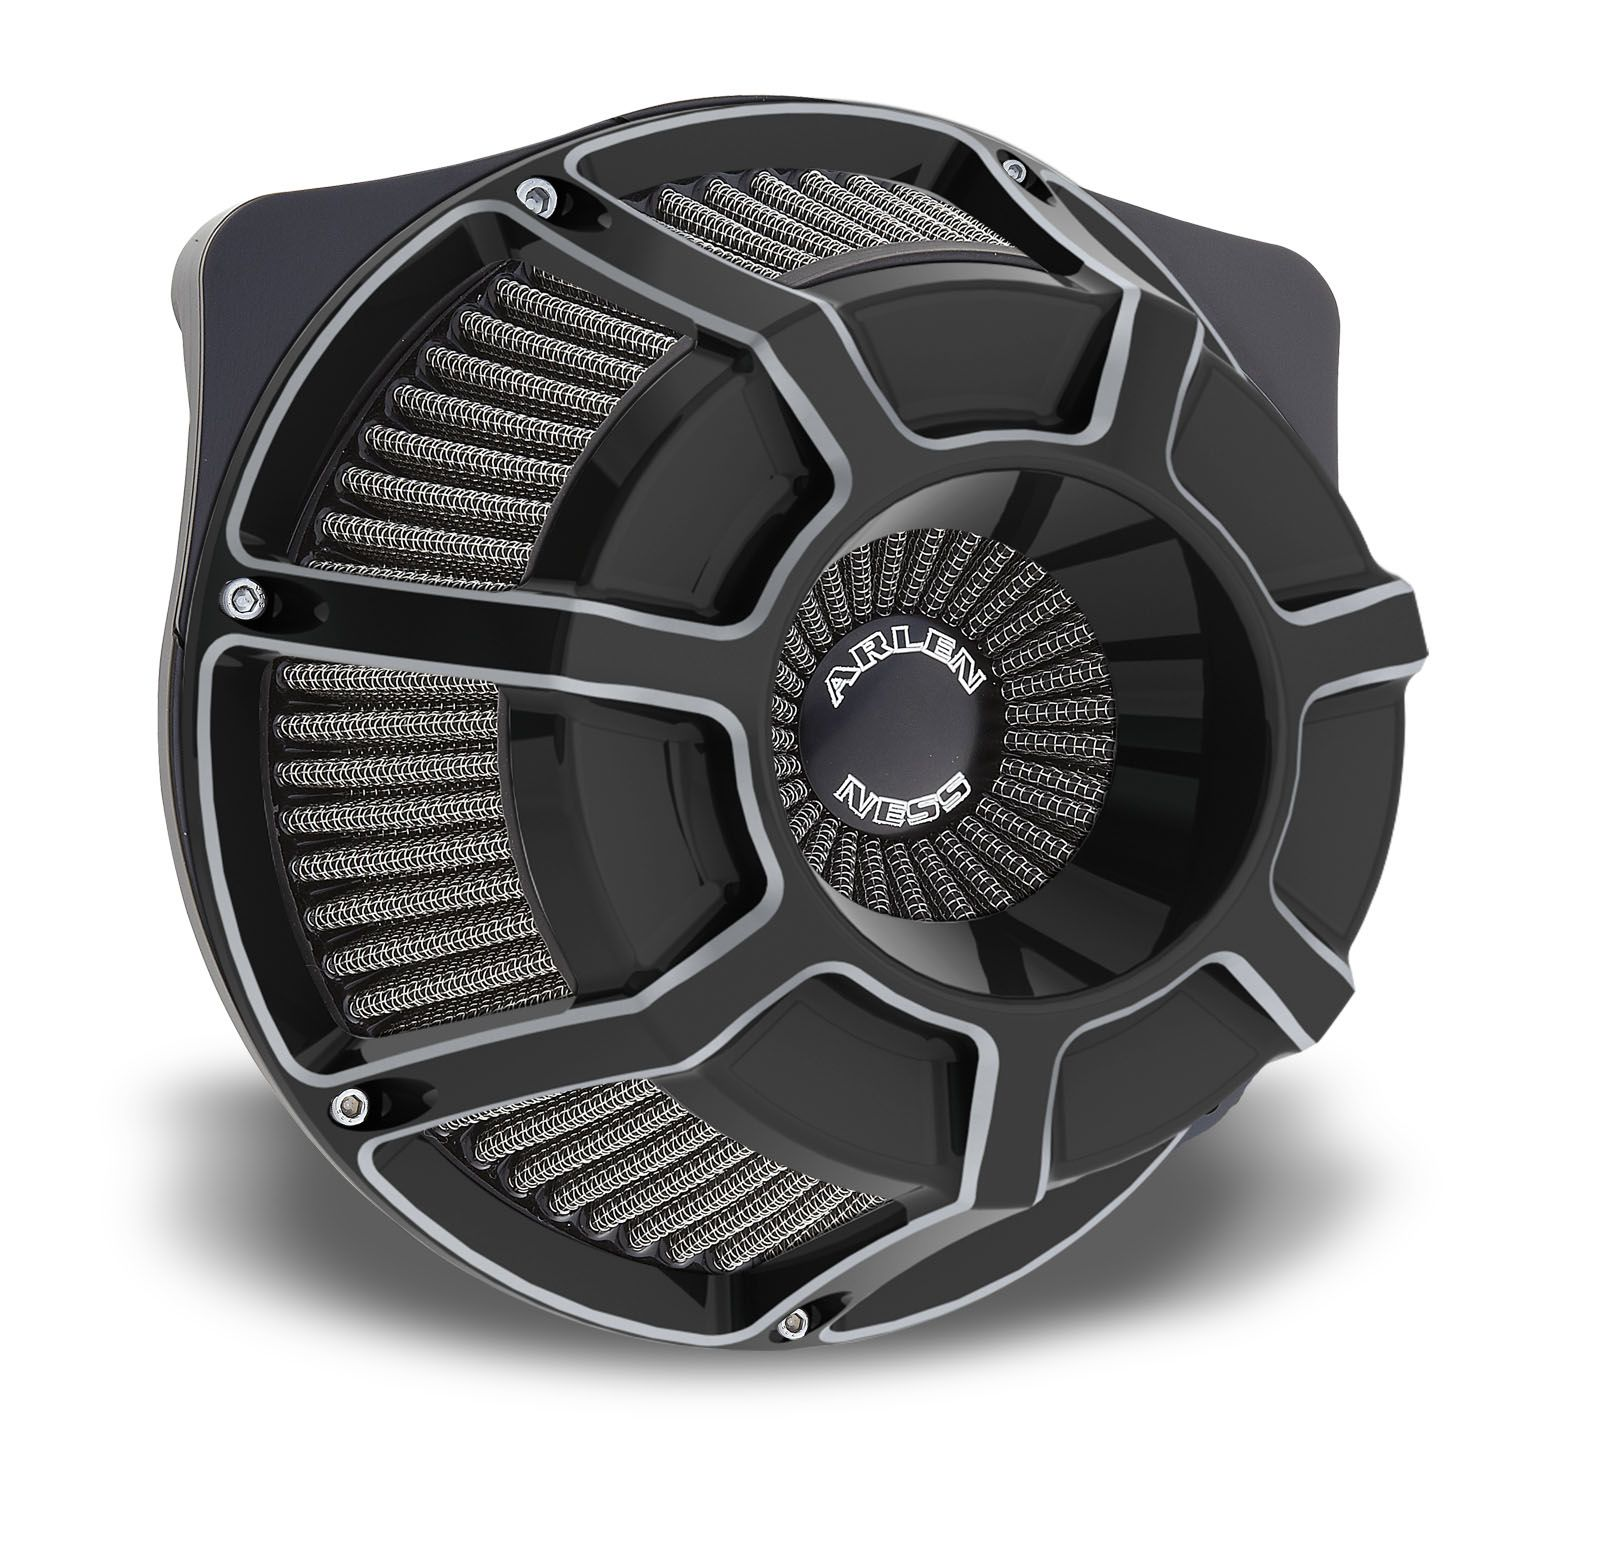 Arlen Ness Inverted Series Air Cleaner Kit. Yes, please